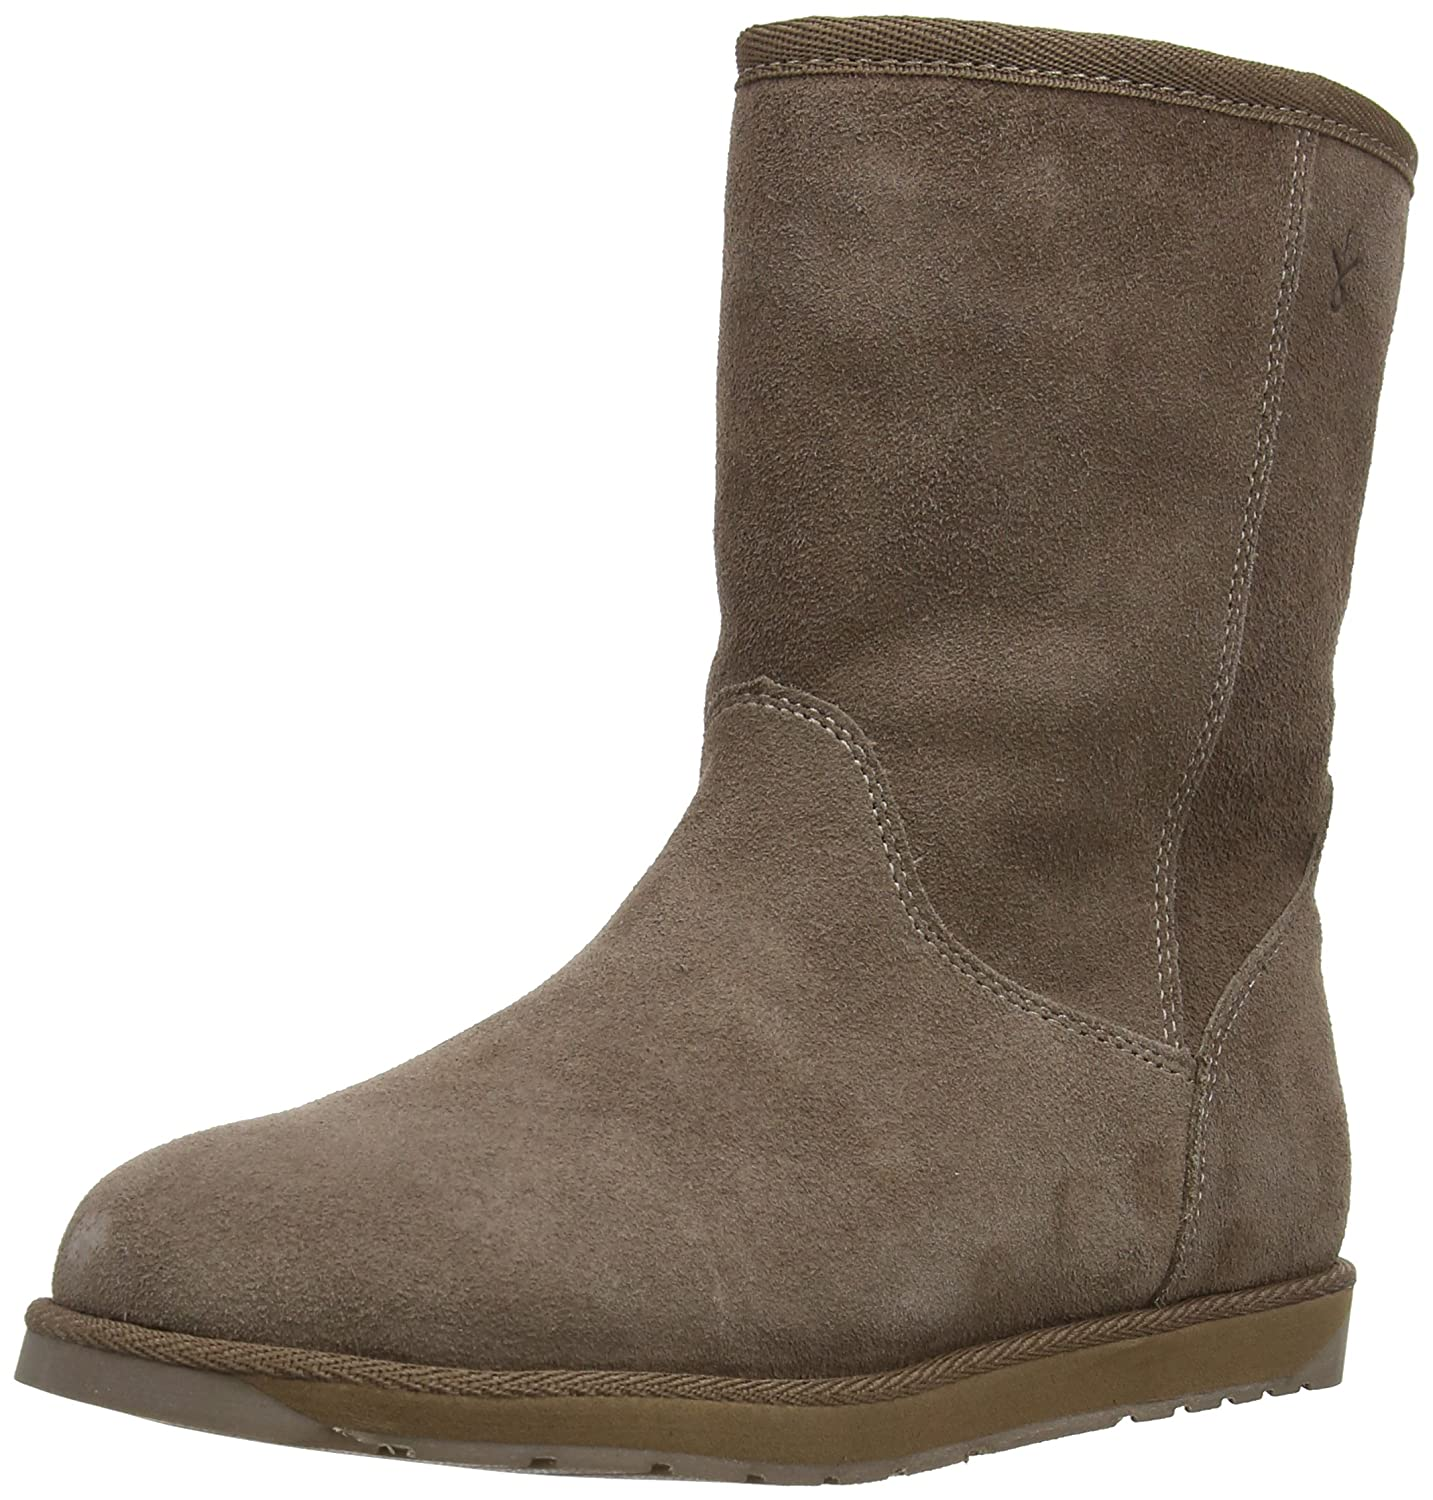 Emu Womens Spindle Lo Boots: Amazon.co.uk: Shoes & Bags